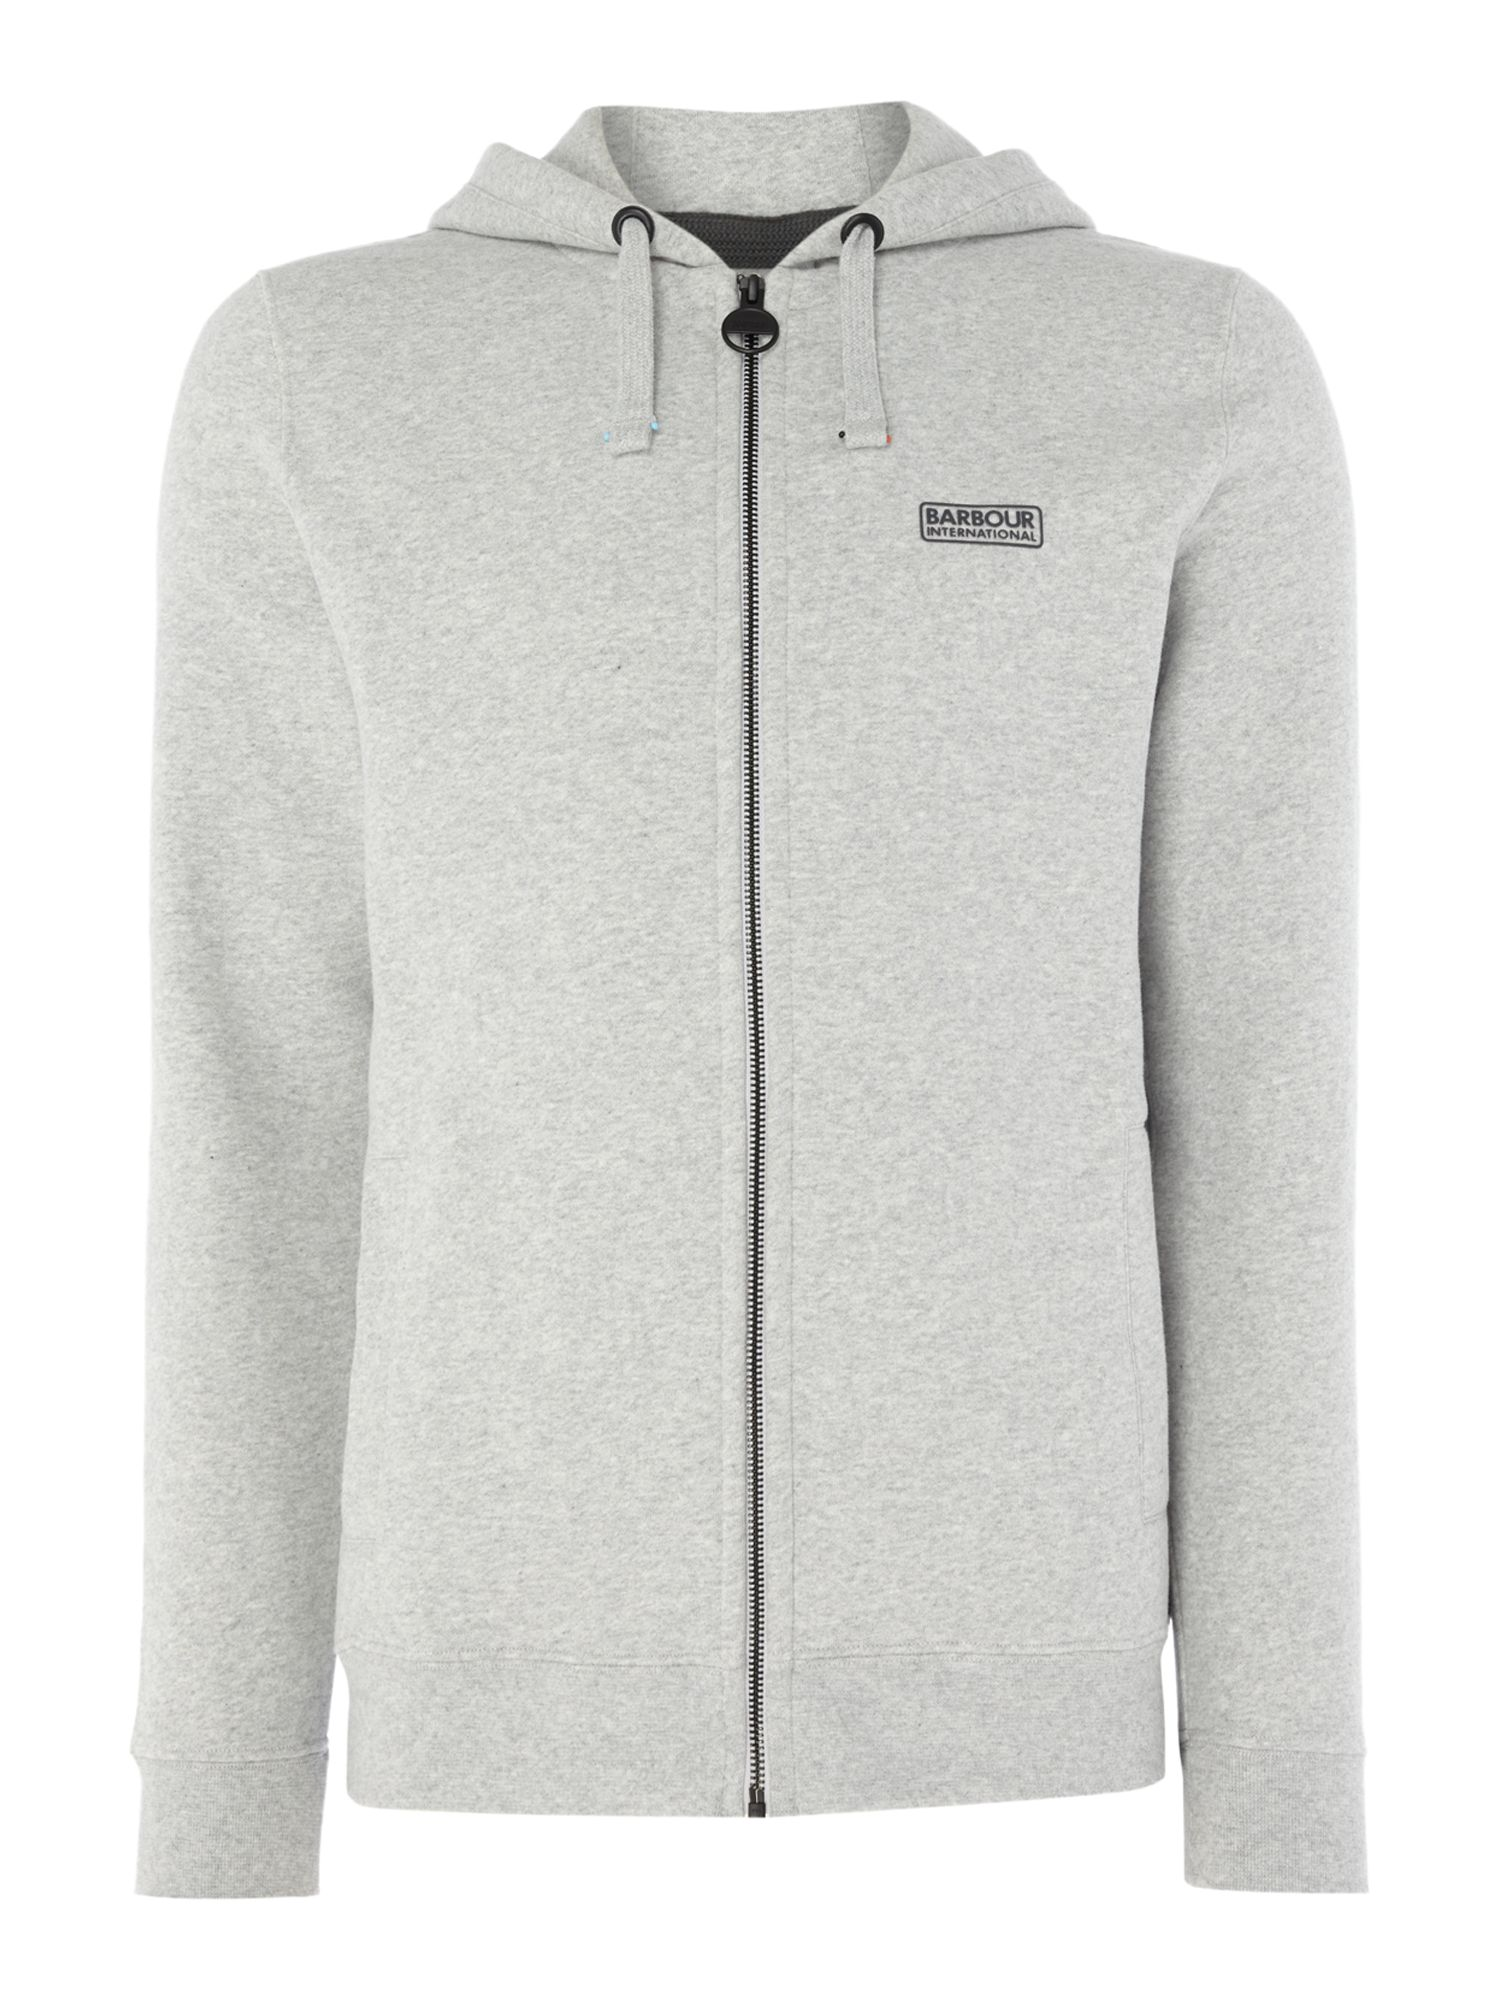 Men's Barbour Small logo hooded sweat, Grey Marl